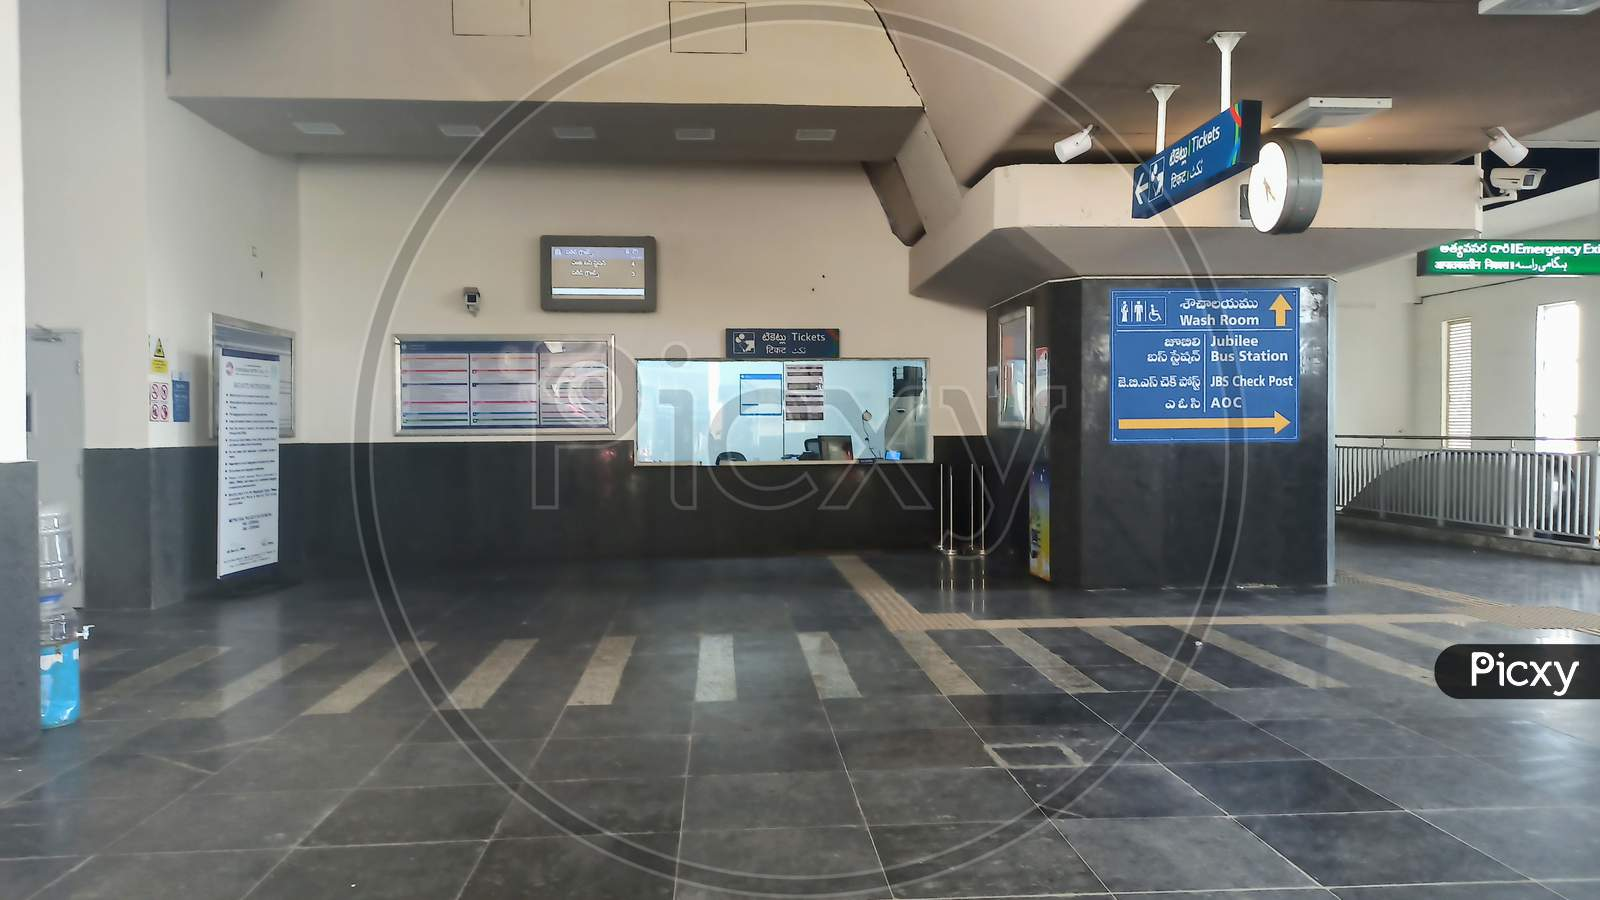 JBS Parade Ground Metro Rail Station Ticket Counter